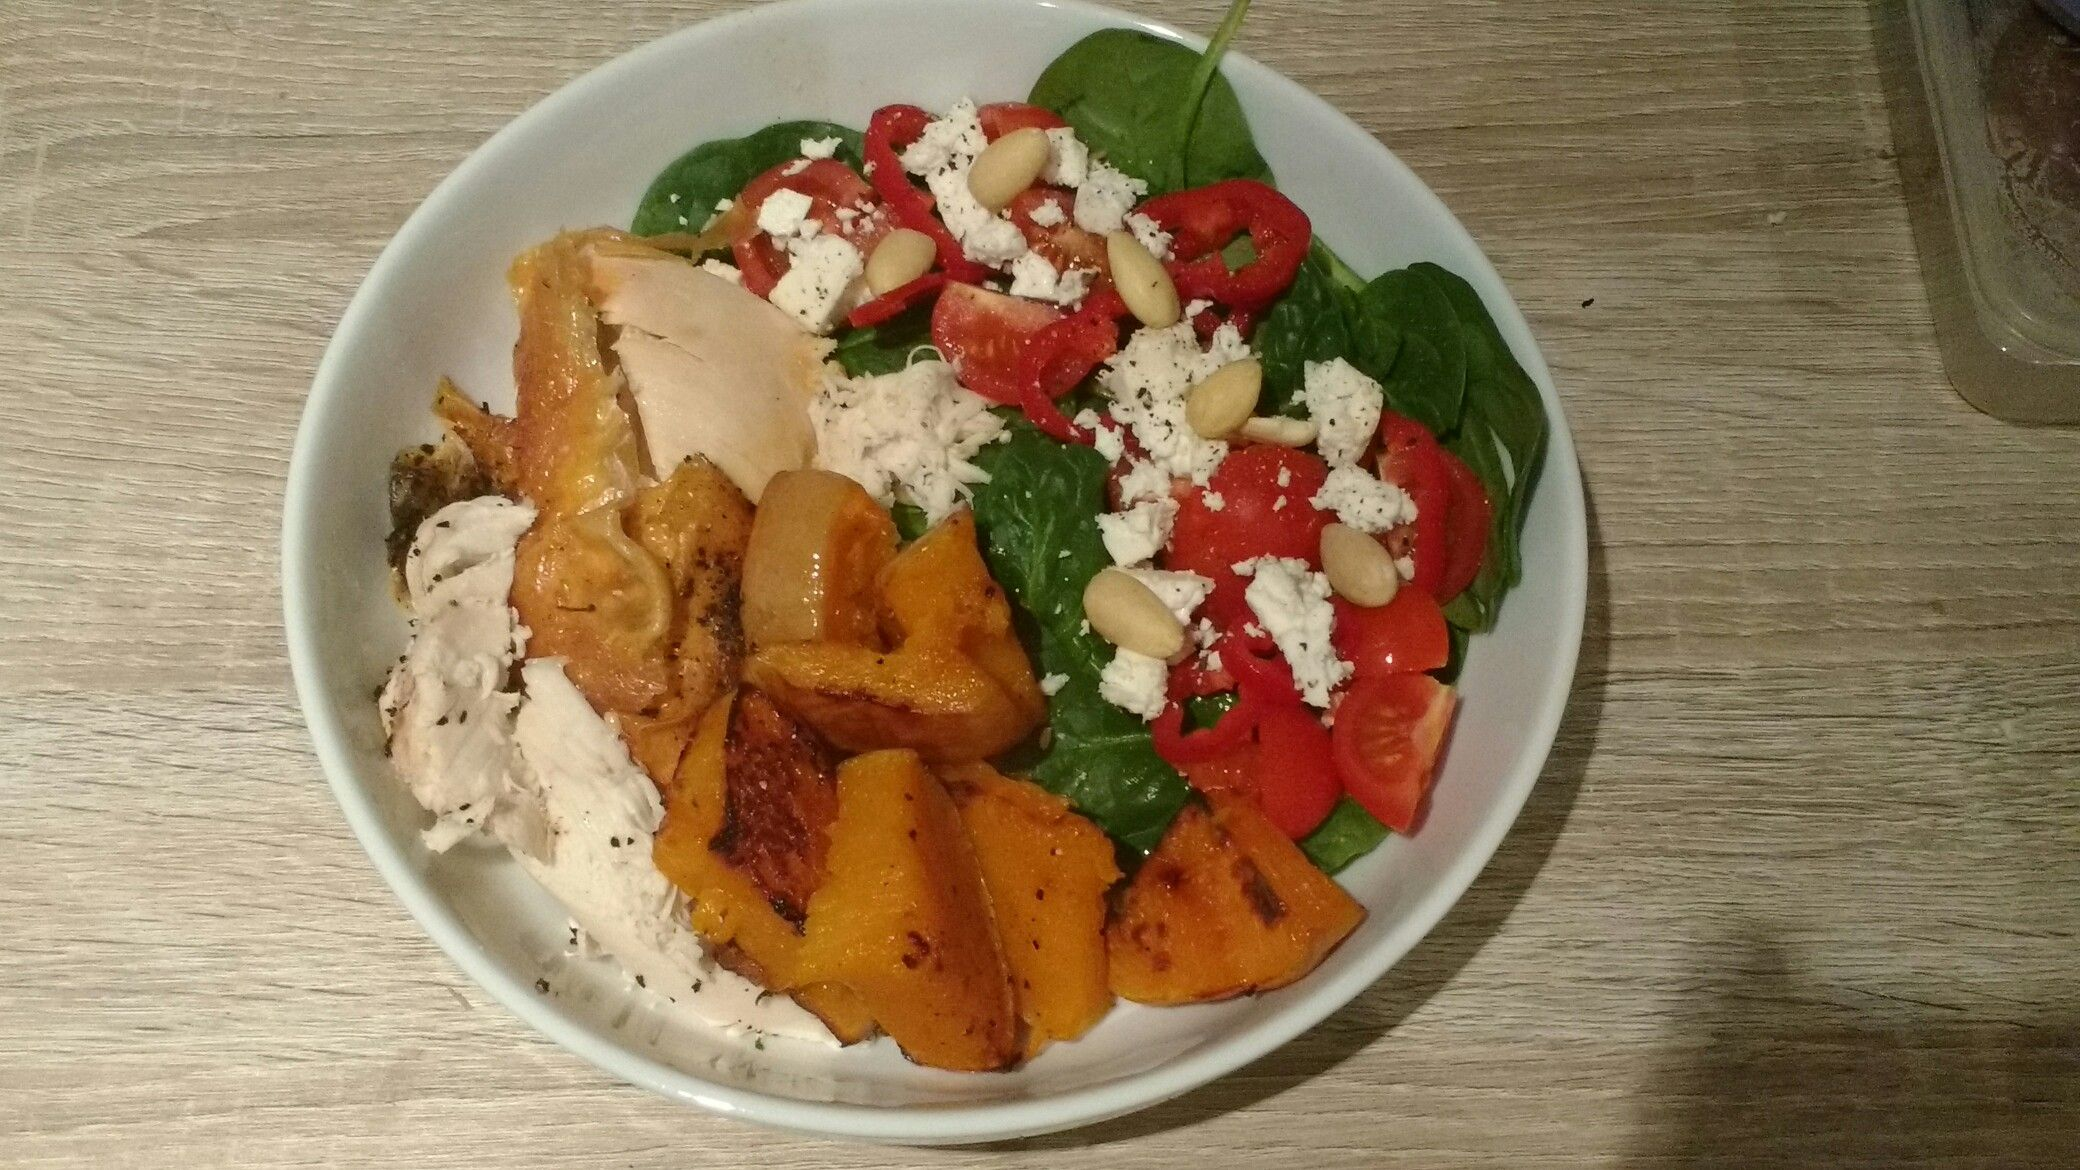 Protein filled post yoga dinner of chicken, roasted butternut squash and salad topped with feta & almonds #organic #protein #free-range #conscious #eating #healthy #meal